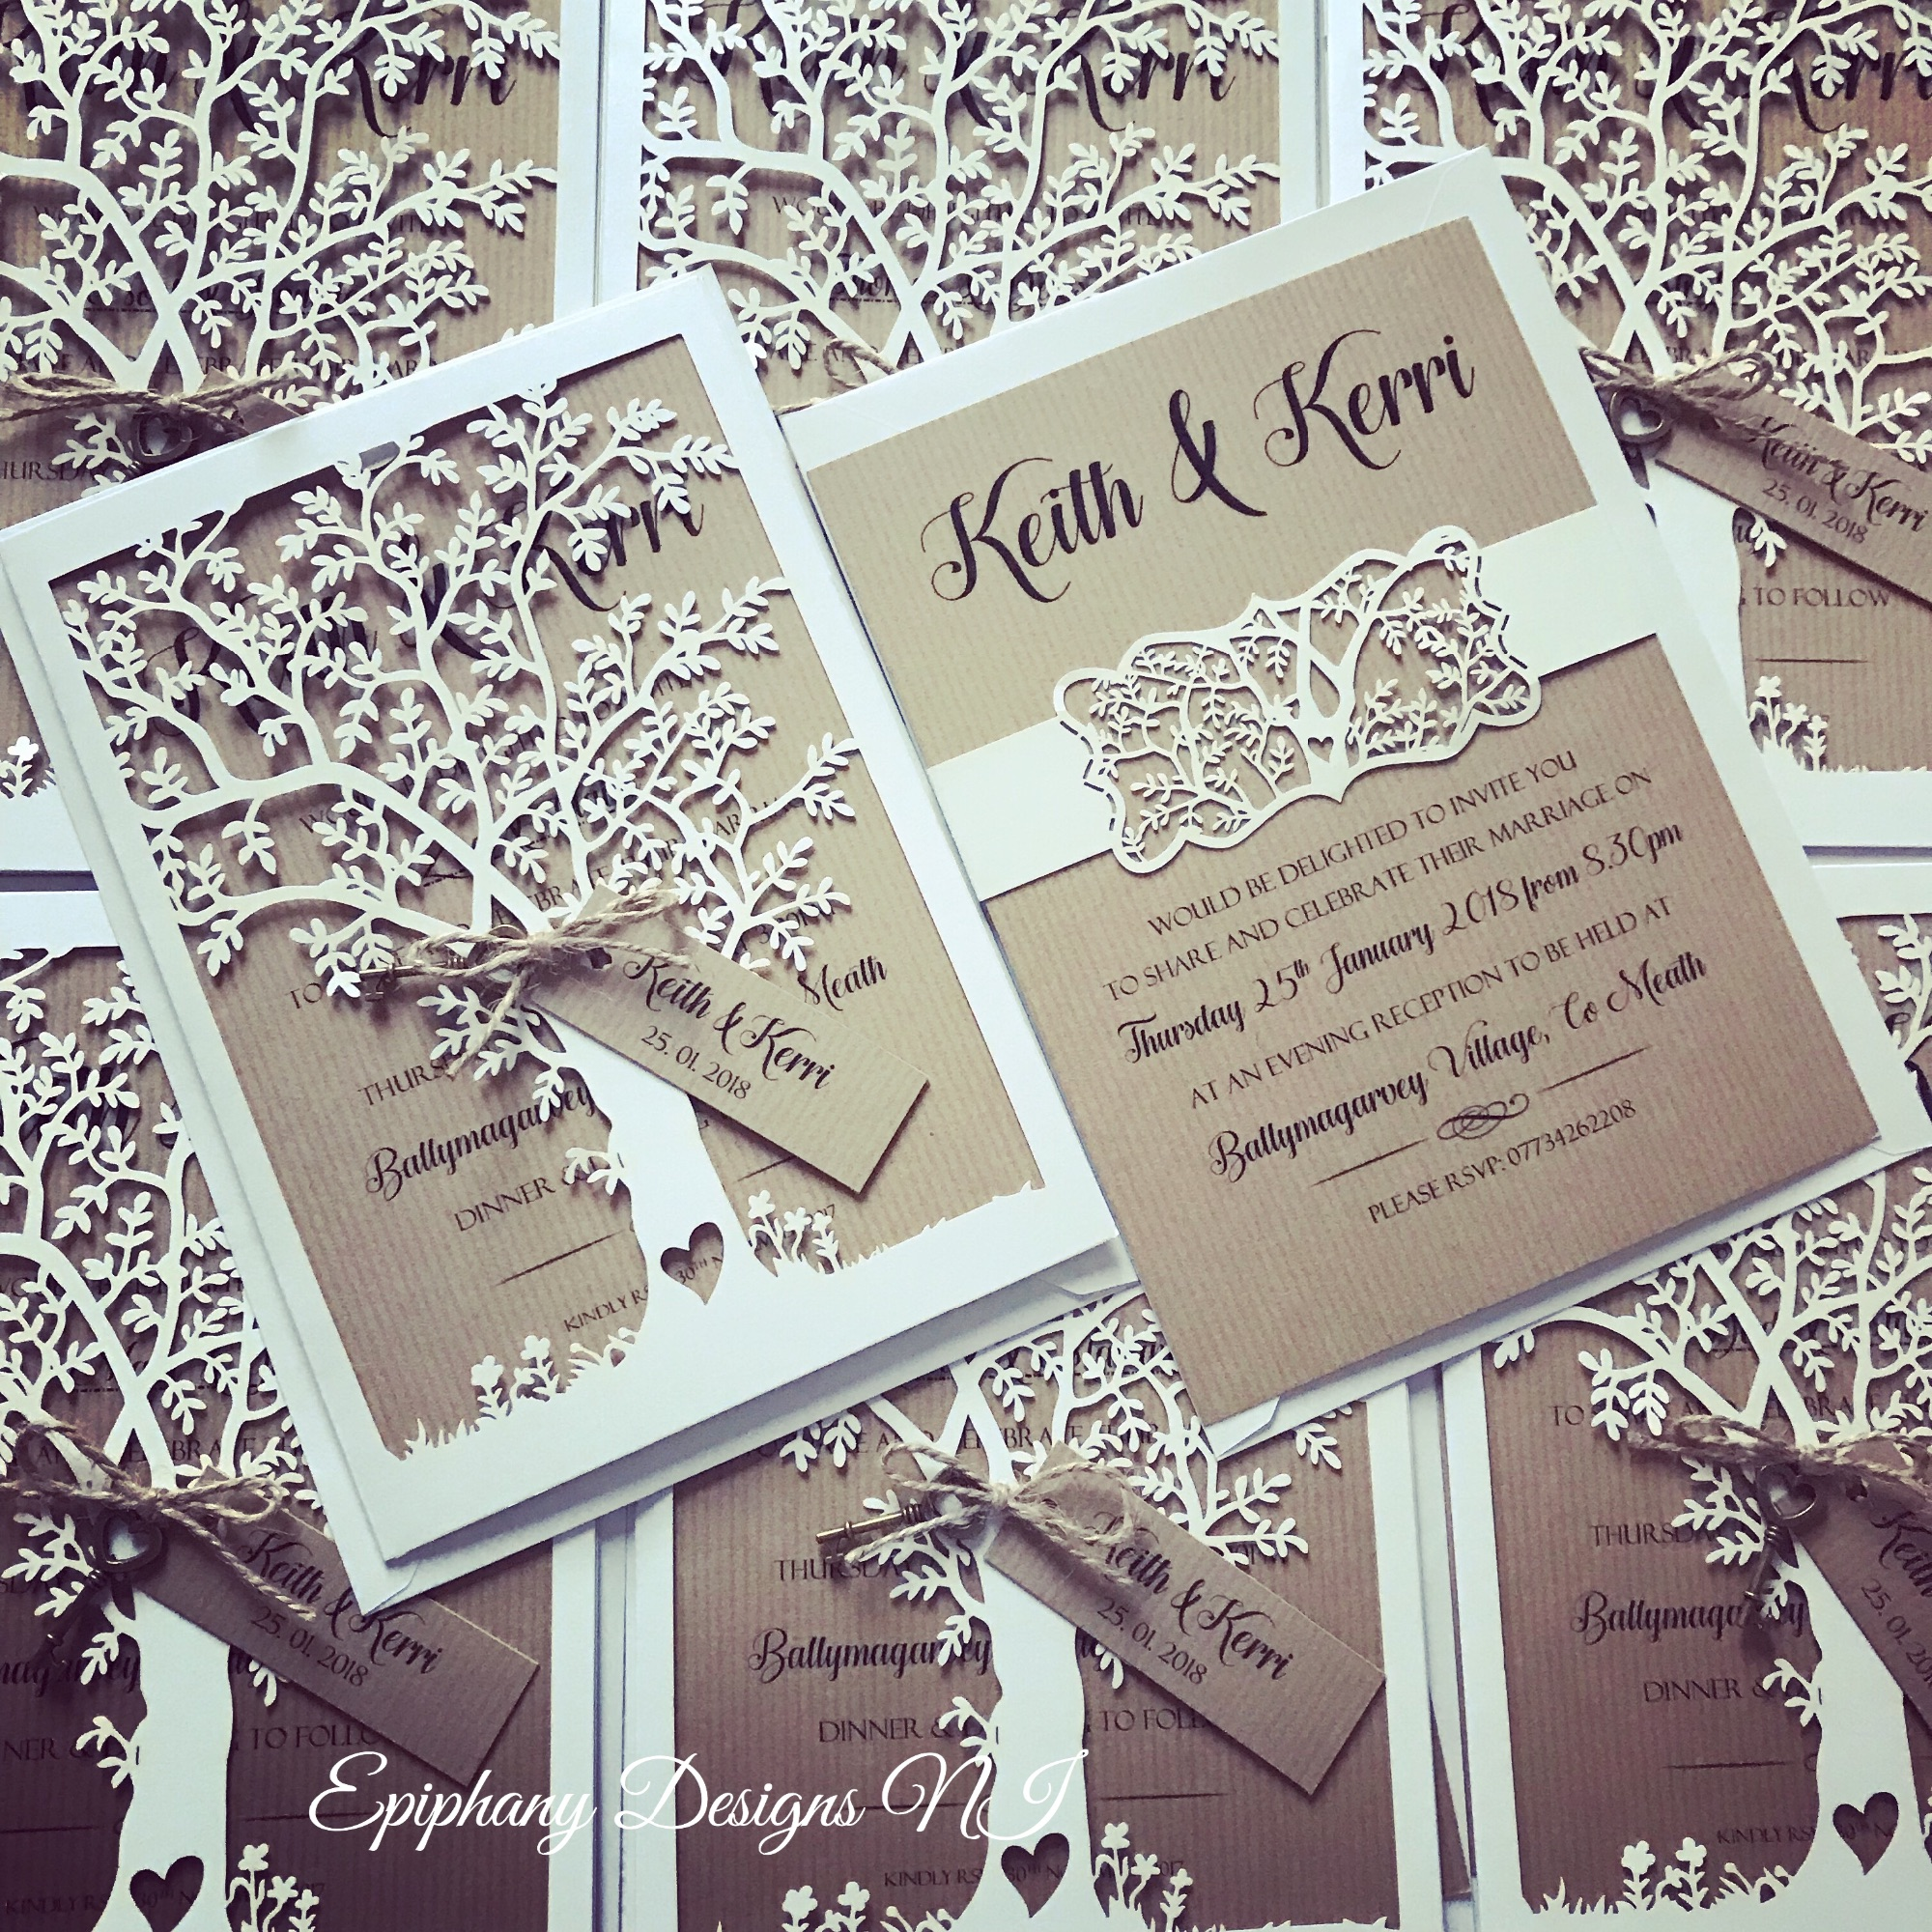 Rustic Lasercut tree wedding invitation with tag and antique heart key